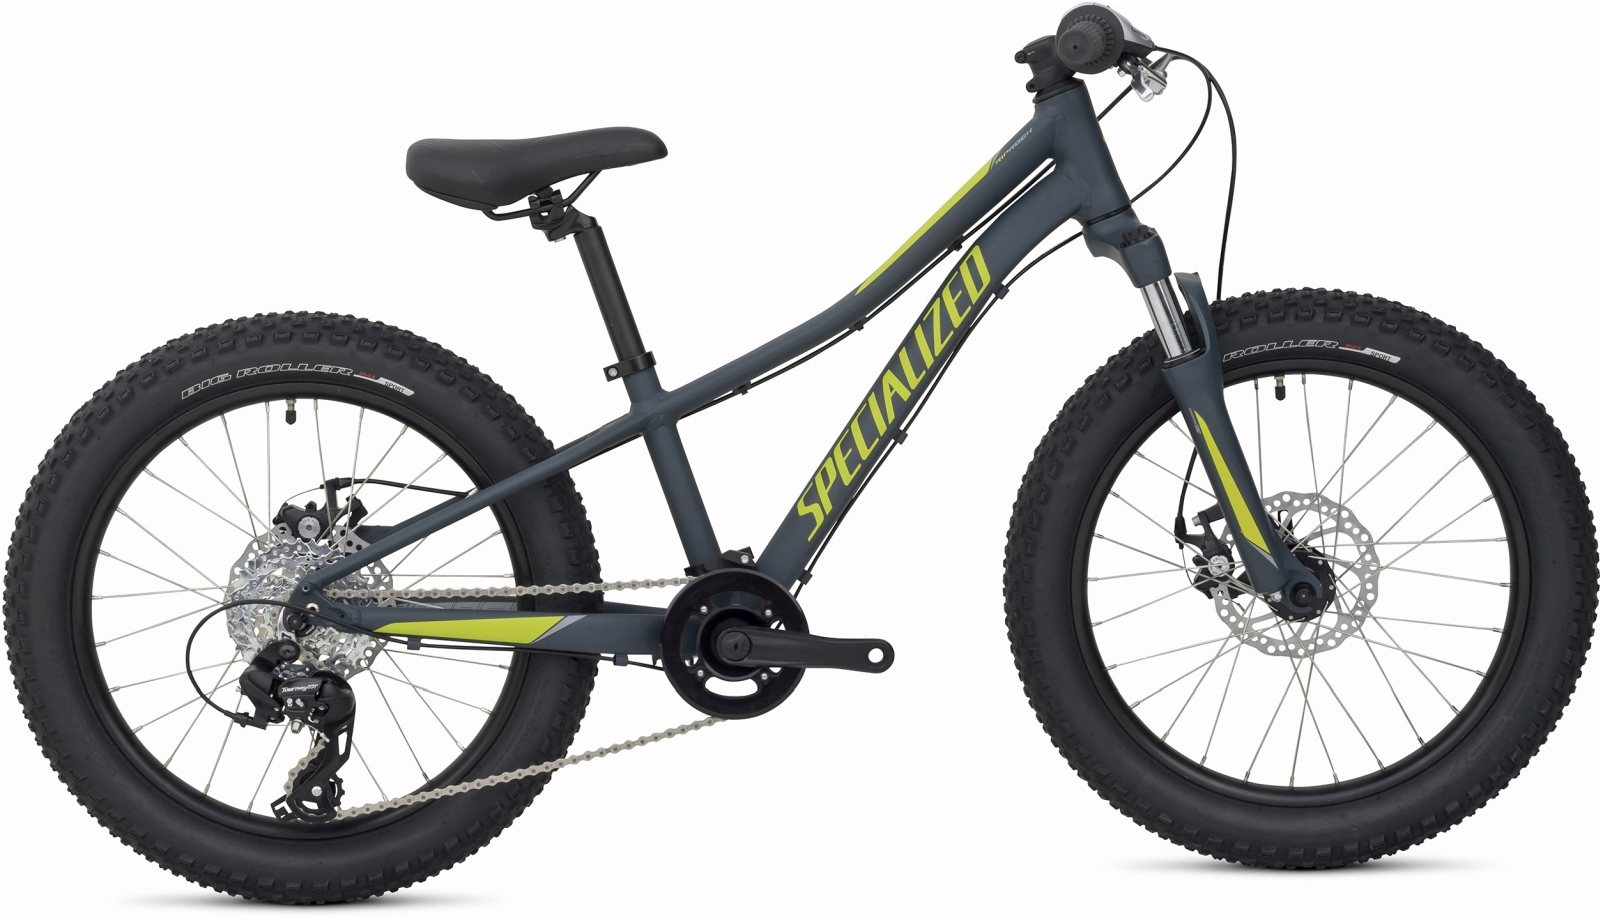 Specialized Riprock 20 - carbgry/hyp/clgry uni